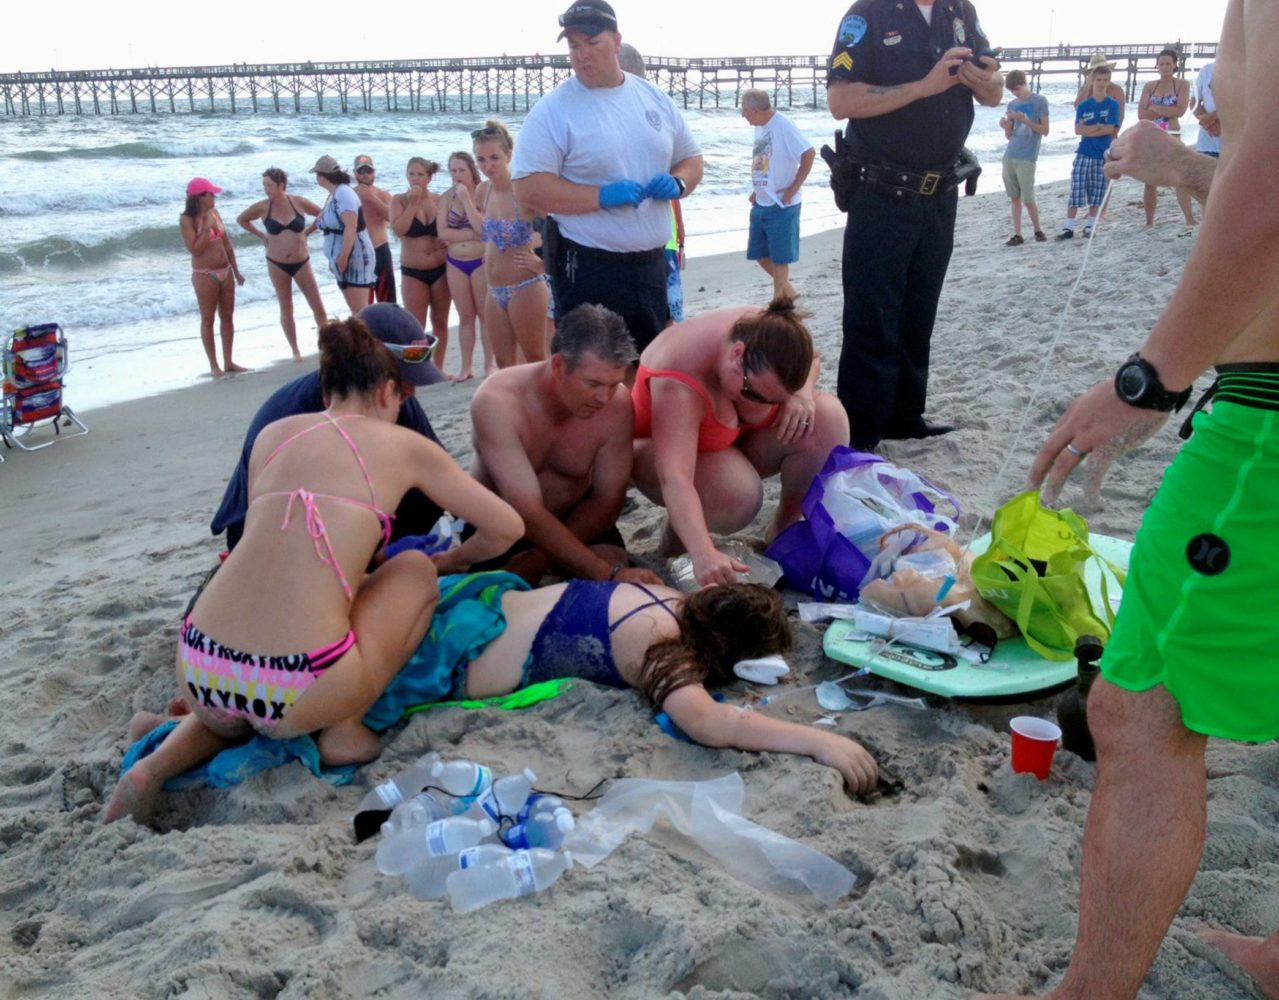 Mayor: Not enough time to close beach between shark attacks